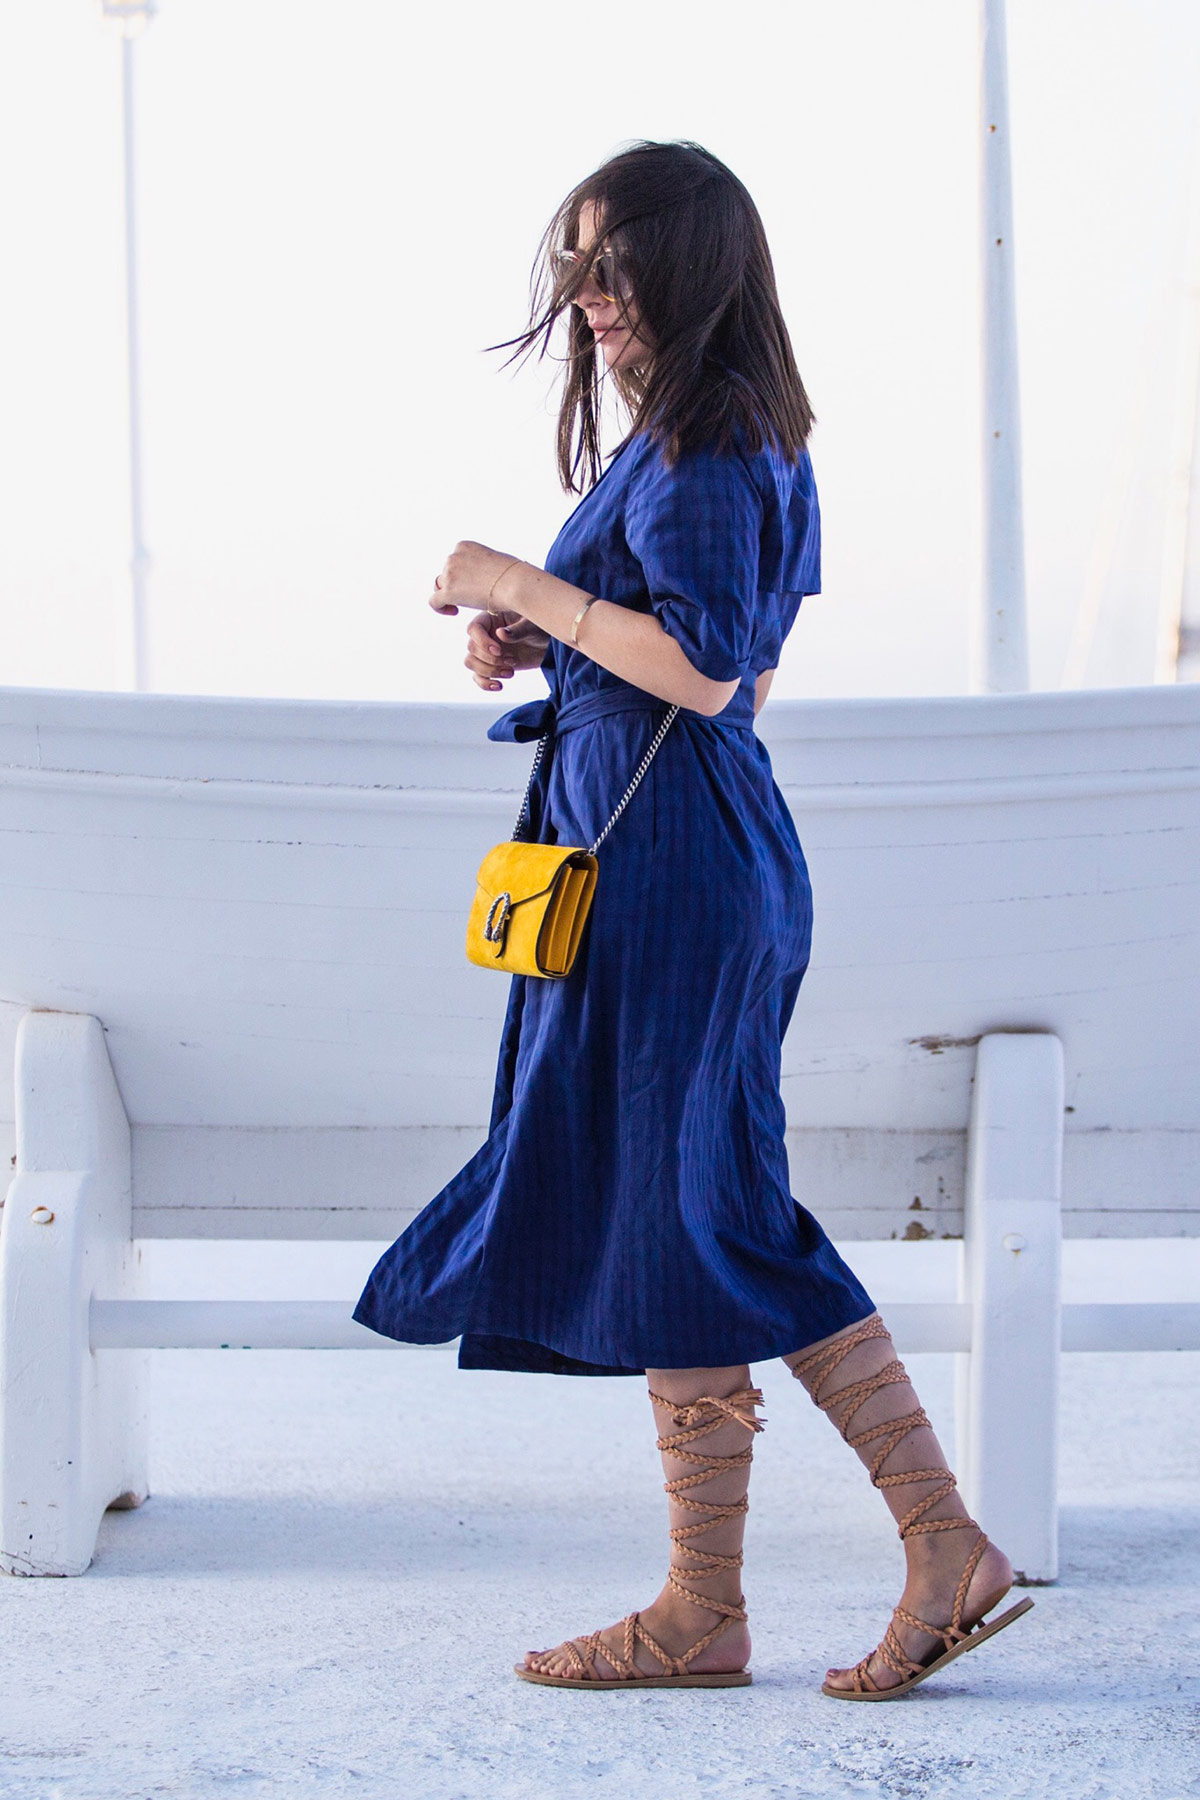 Stella Asteria wearing blue dress & yellow Gucci Dionysus bag in Mykonos